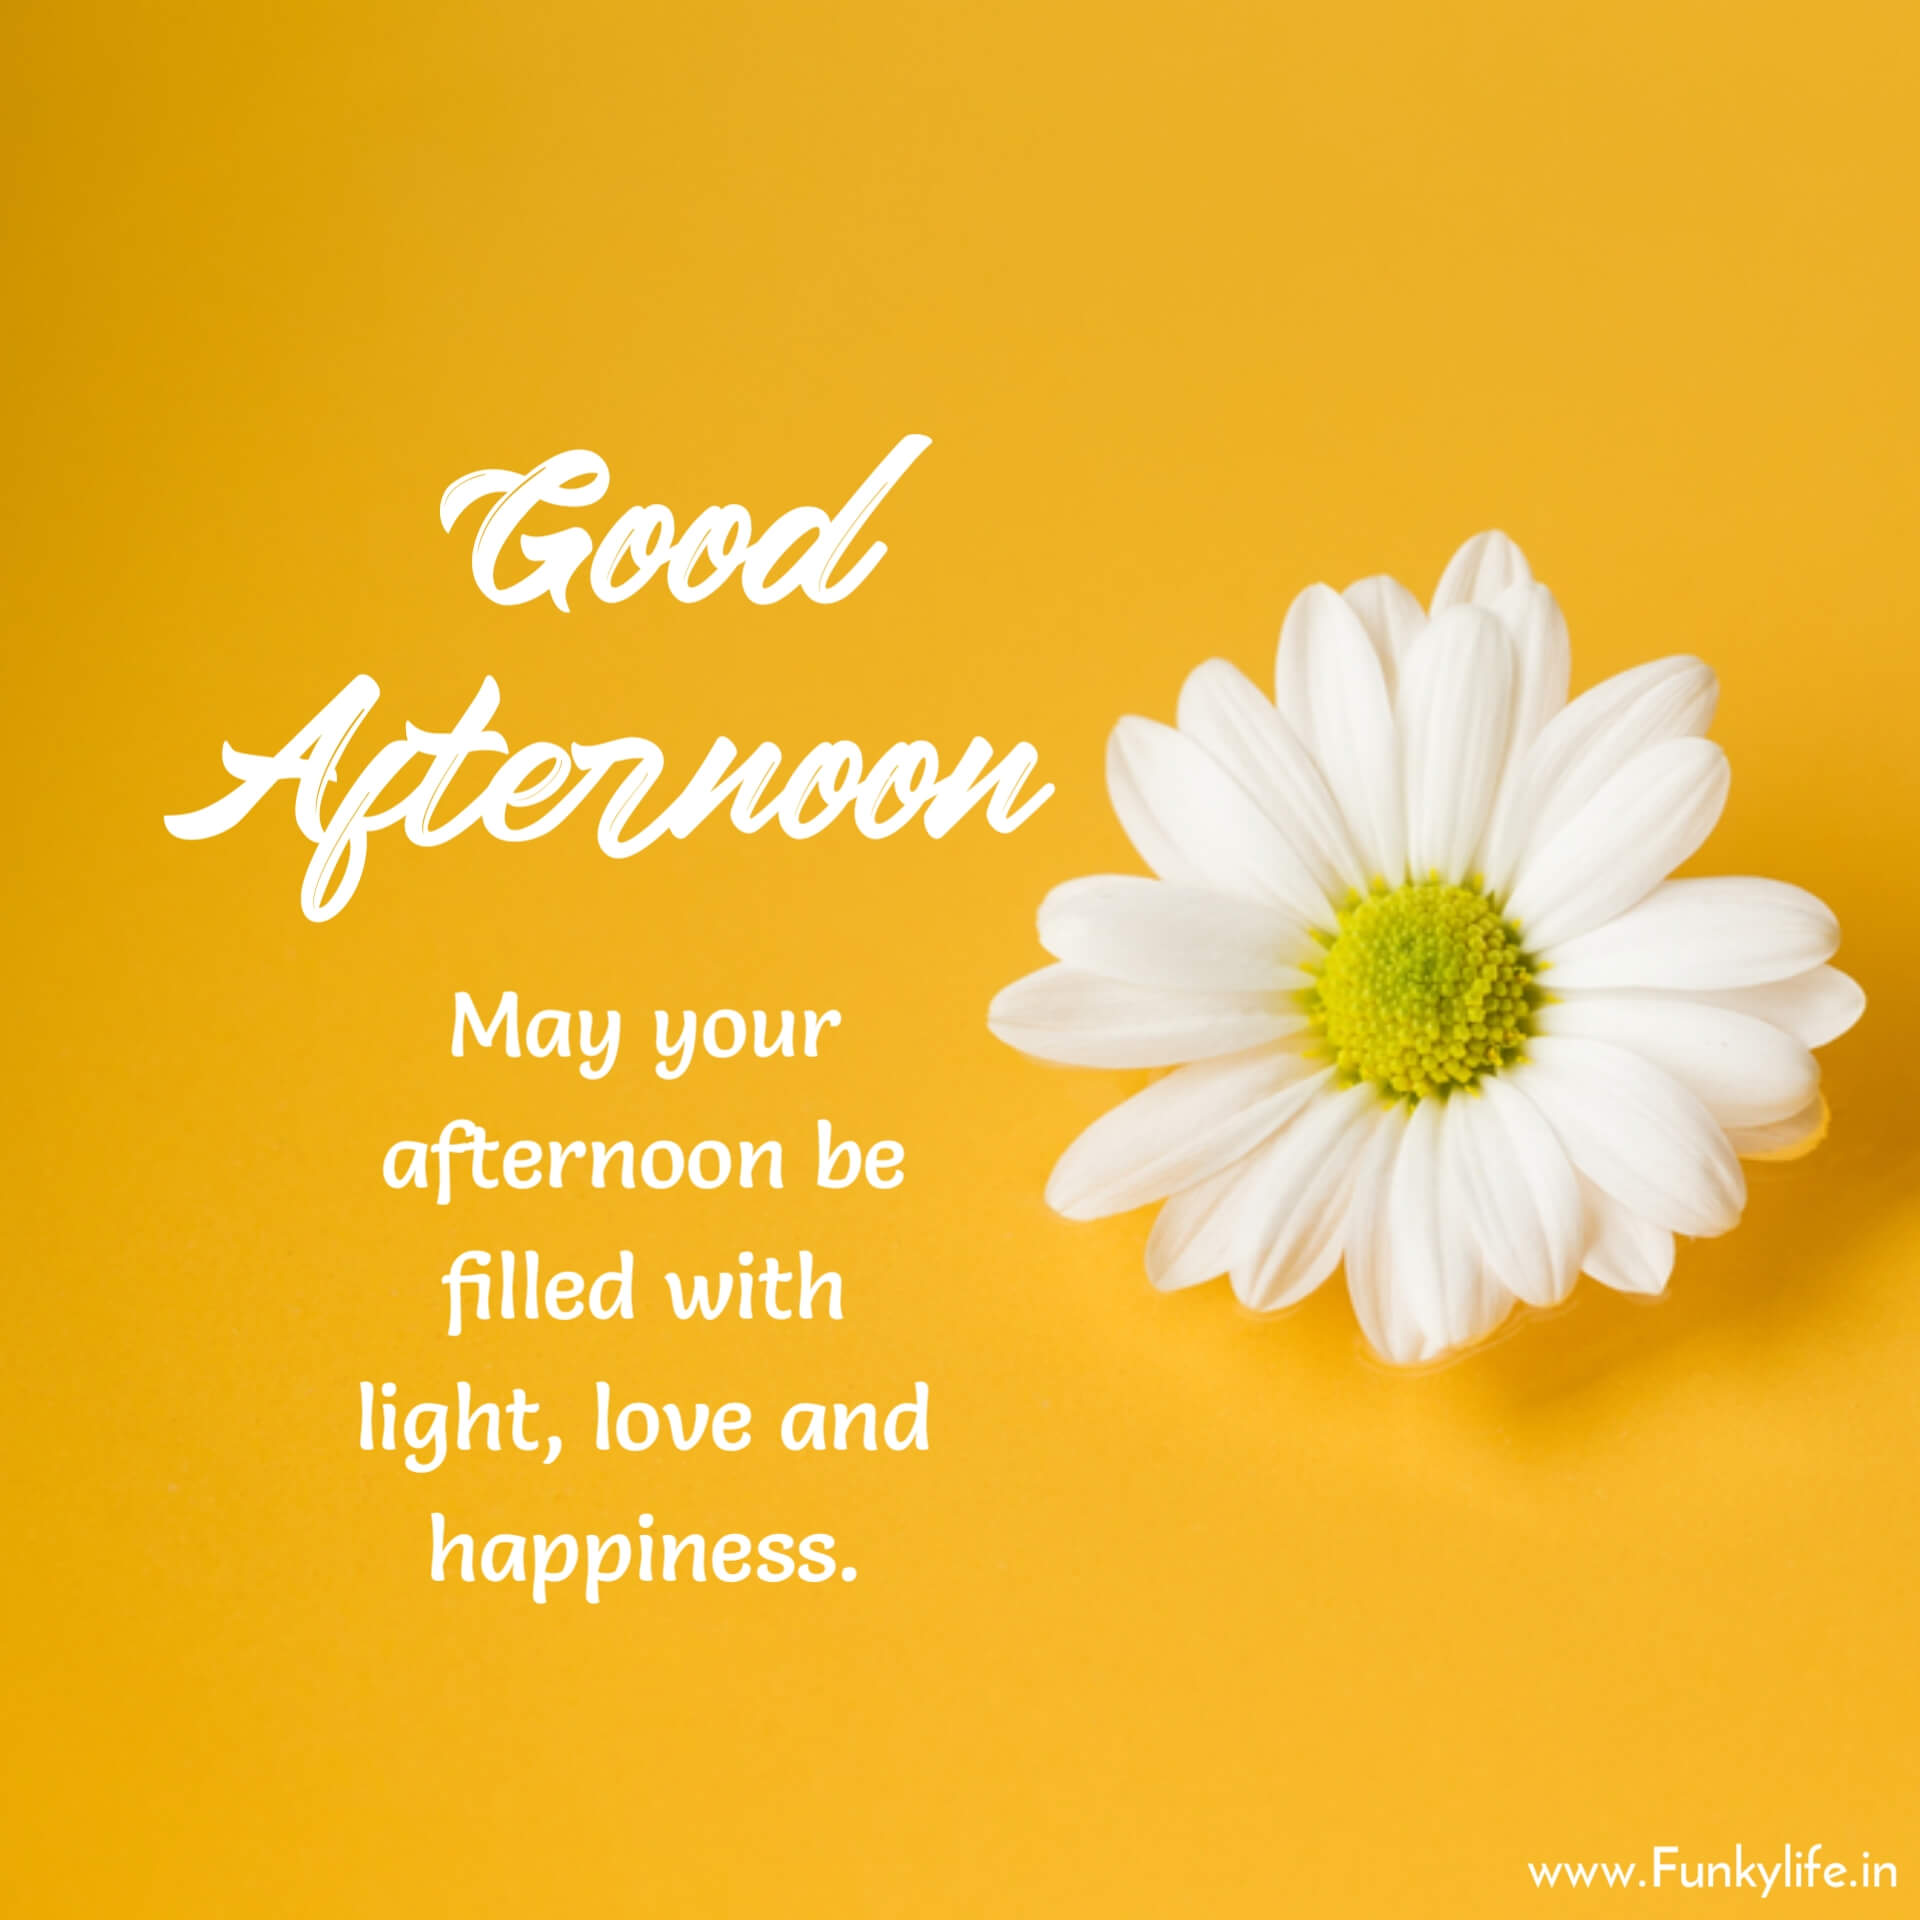 Good Afternoon wish Image with Quote